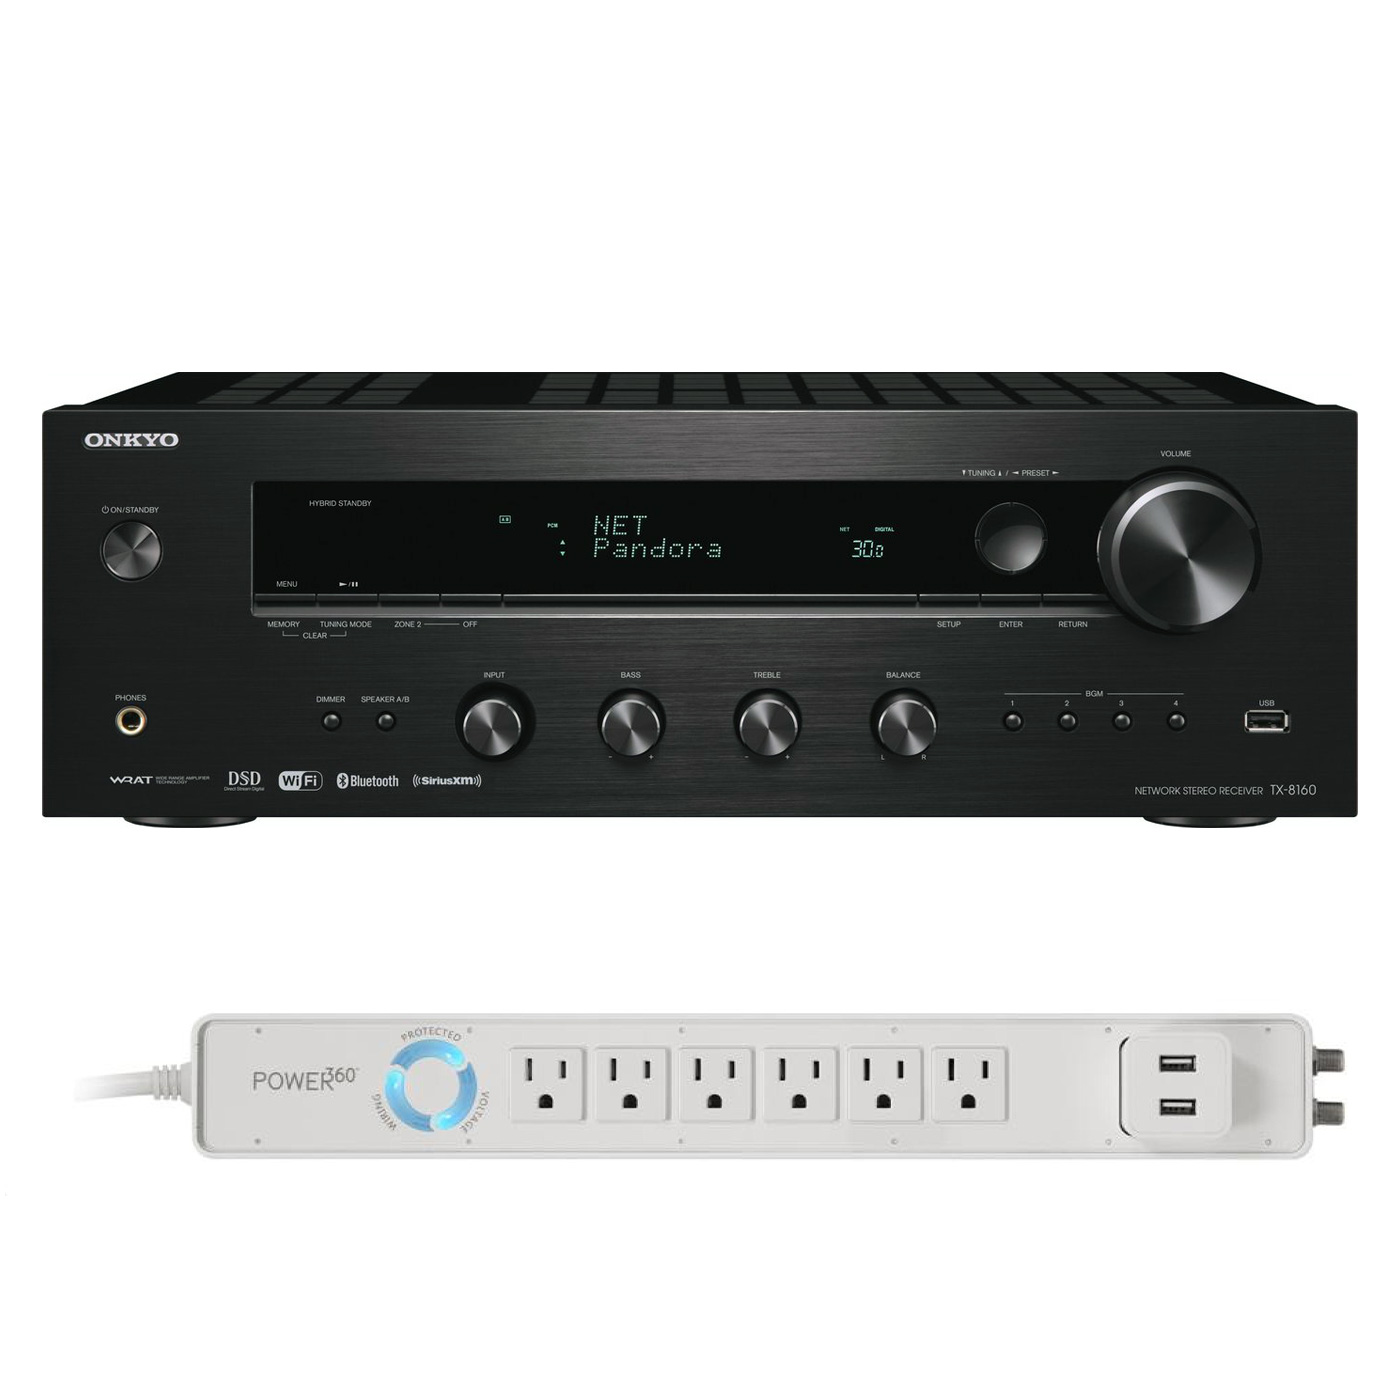 Onkyo TX-8160 Network Stereo Receiver and 6-Outlet Floor Power Strip with USB Charging by Onkyo